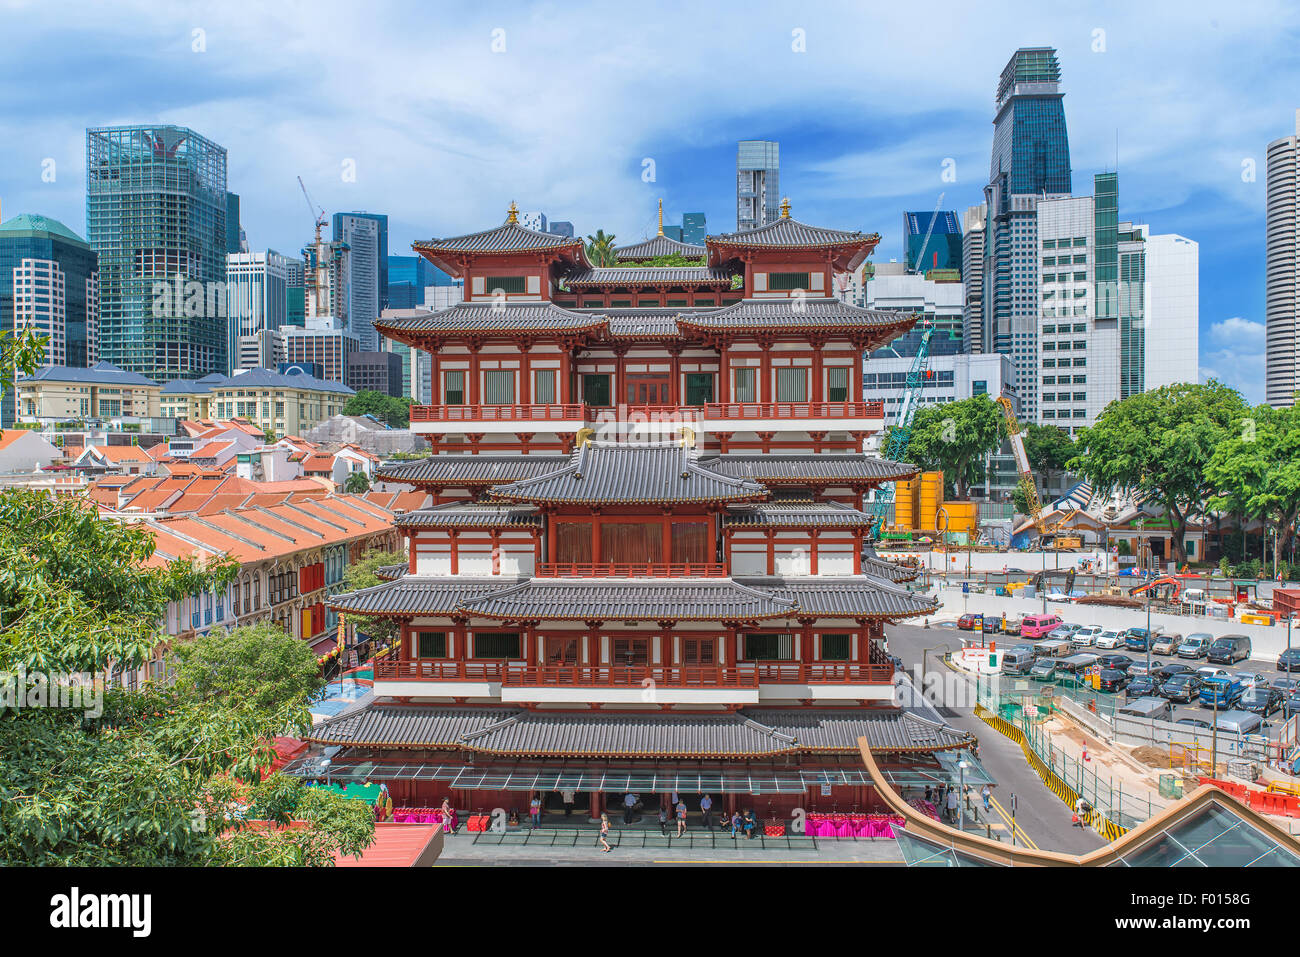 The Buddha Tooth Relic Temple in Singapore's Chinatown - Stock Image